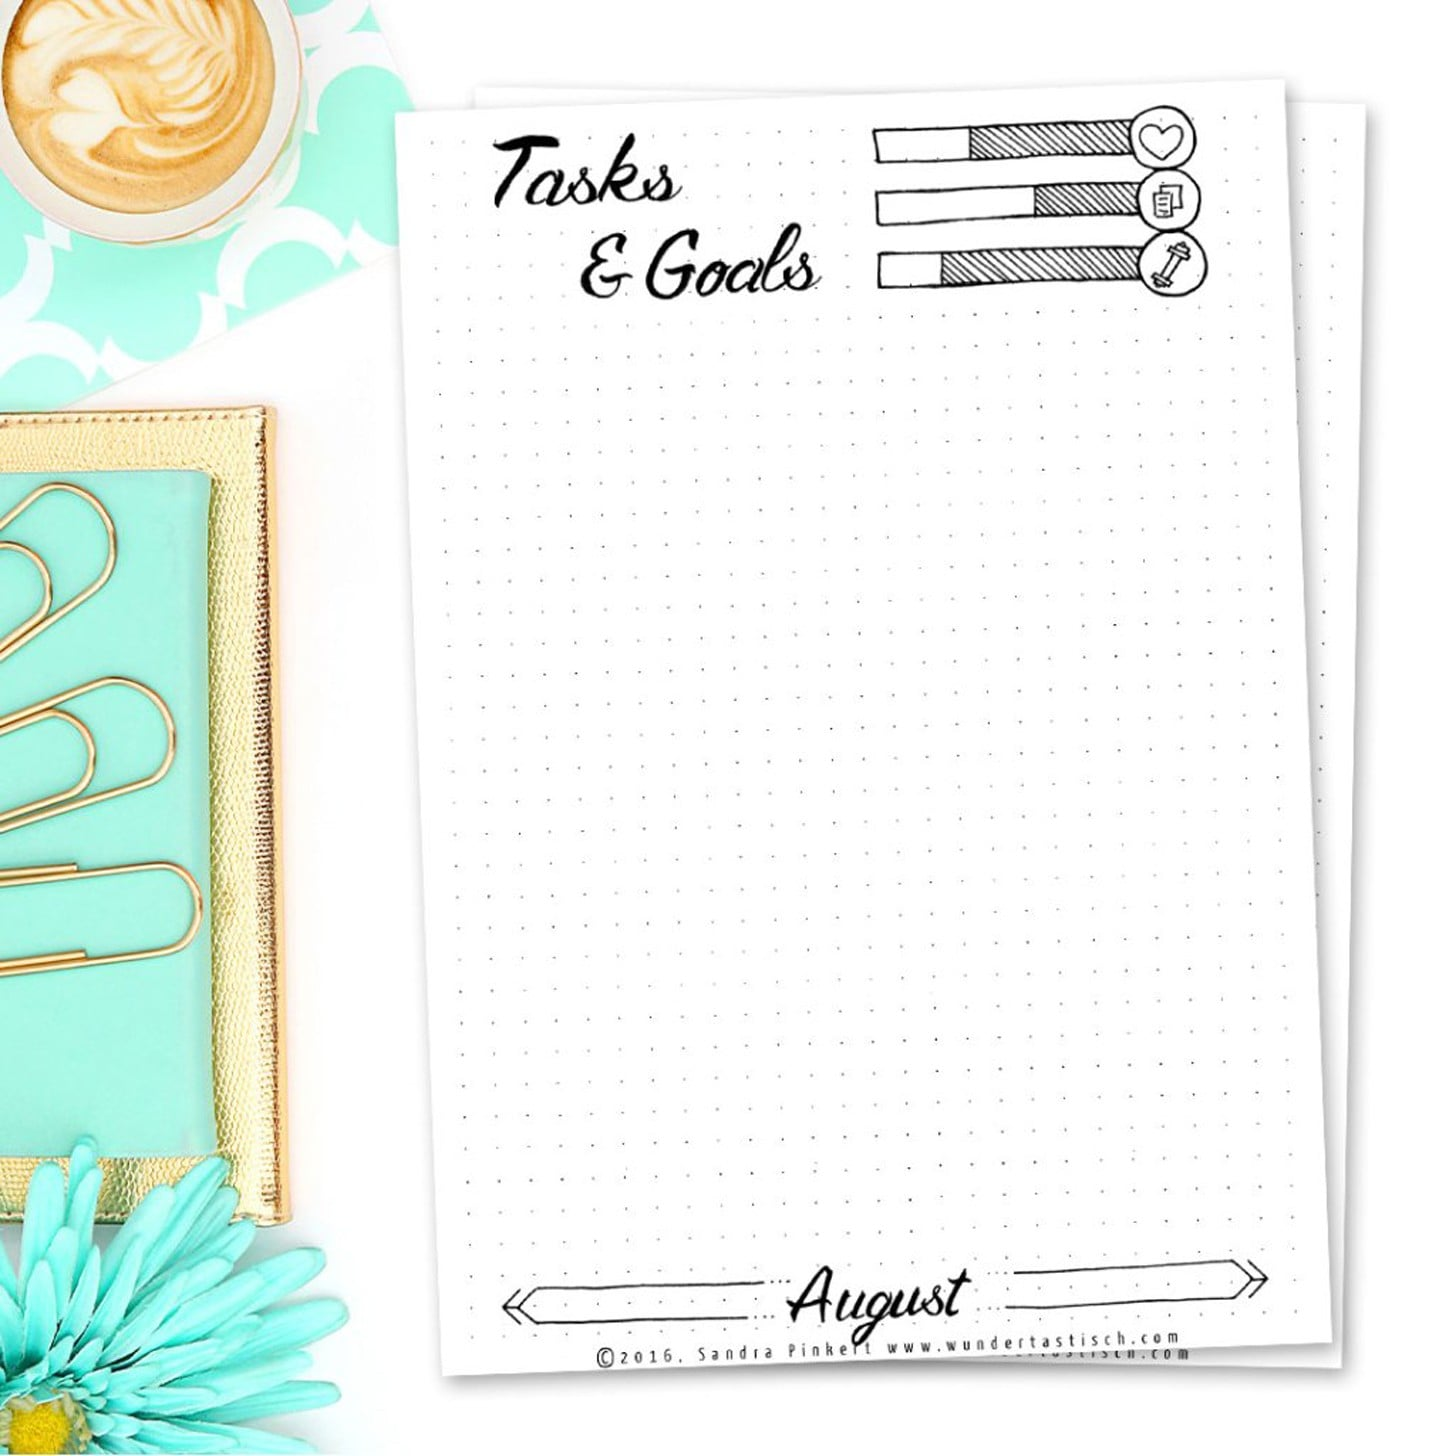 Free Printable Goal Sheets | POPSUGAR Smart Living